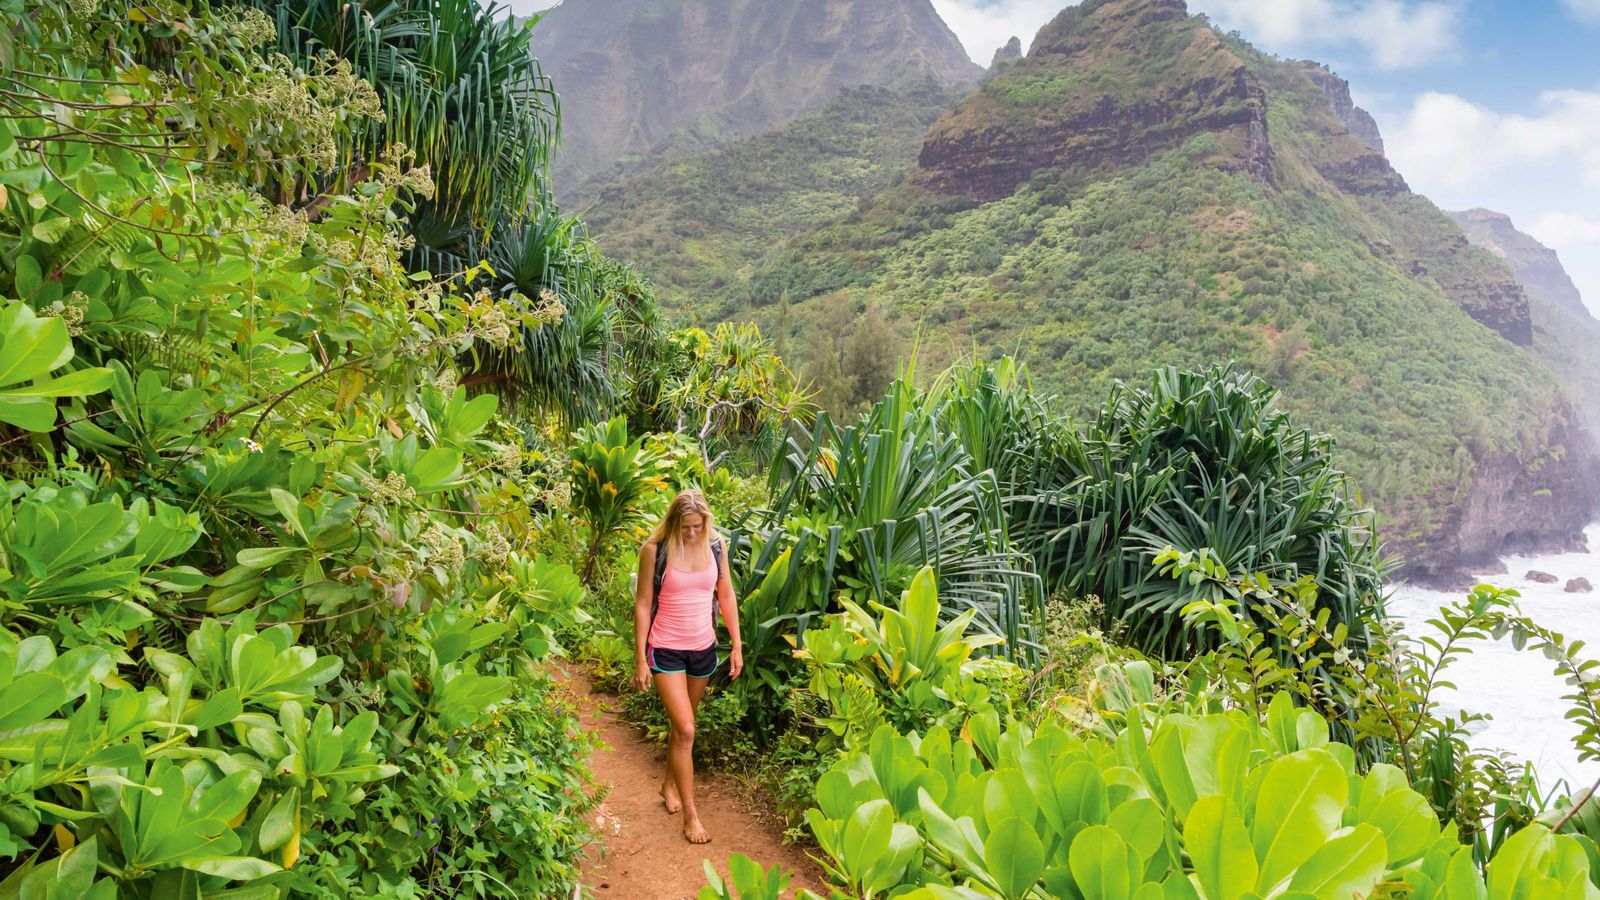 Hawaii's hotel scene is dominated by luxury resorts, but there are rewards for those who venture ...